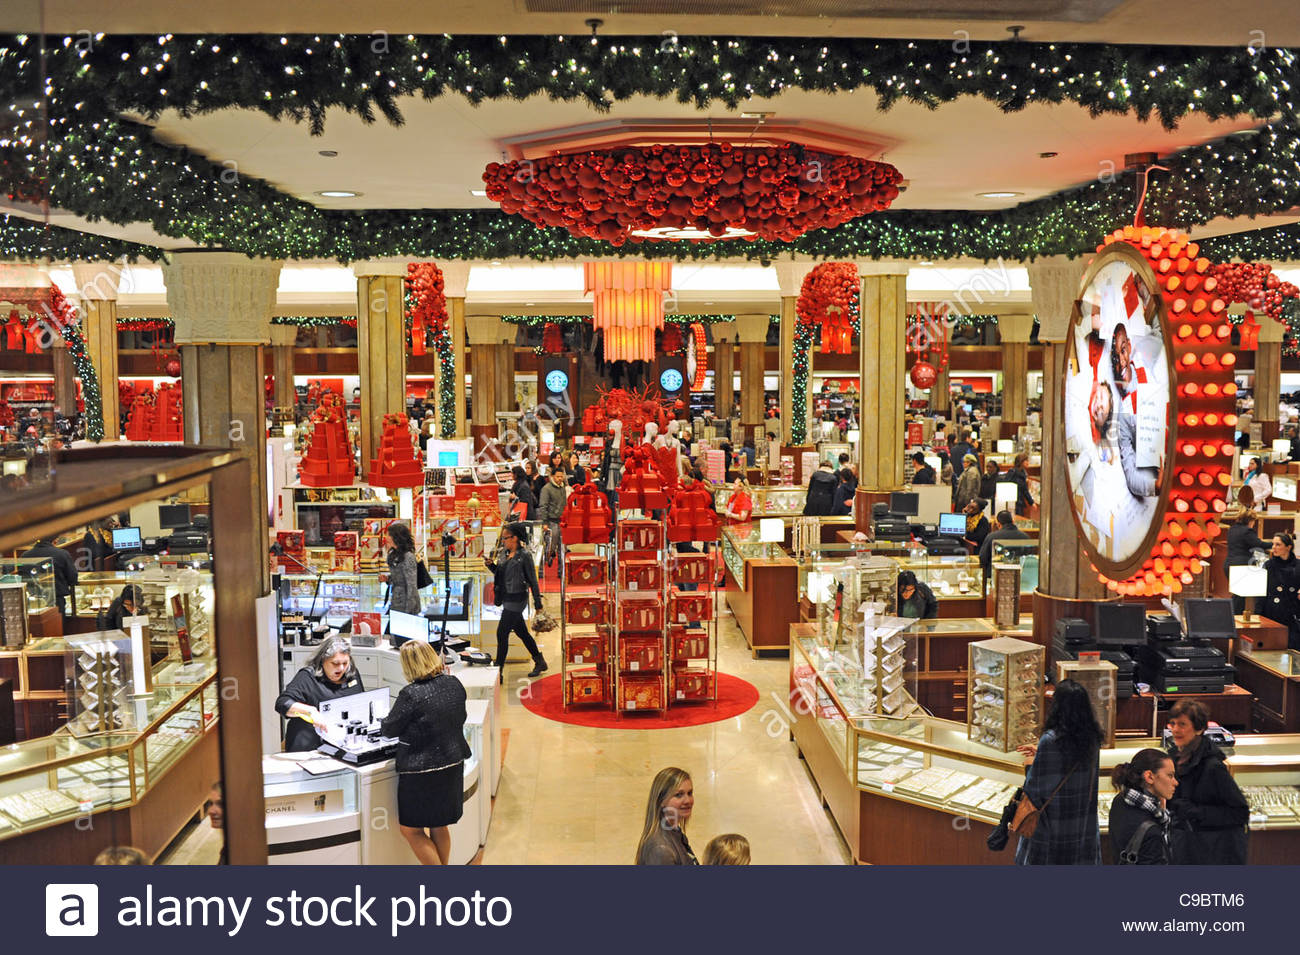 christmas shopping at macy 39 s department store midtown manhattan new stock photo 40213494 alamy. Black Bedroom Furniture Sets. Home Design Ideas